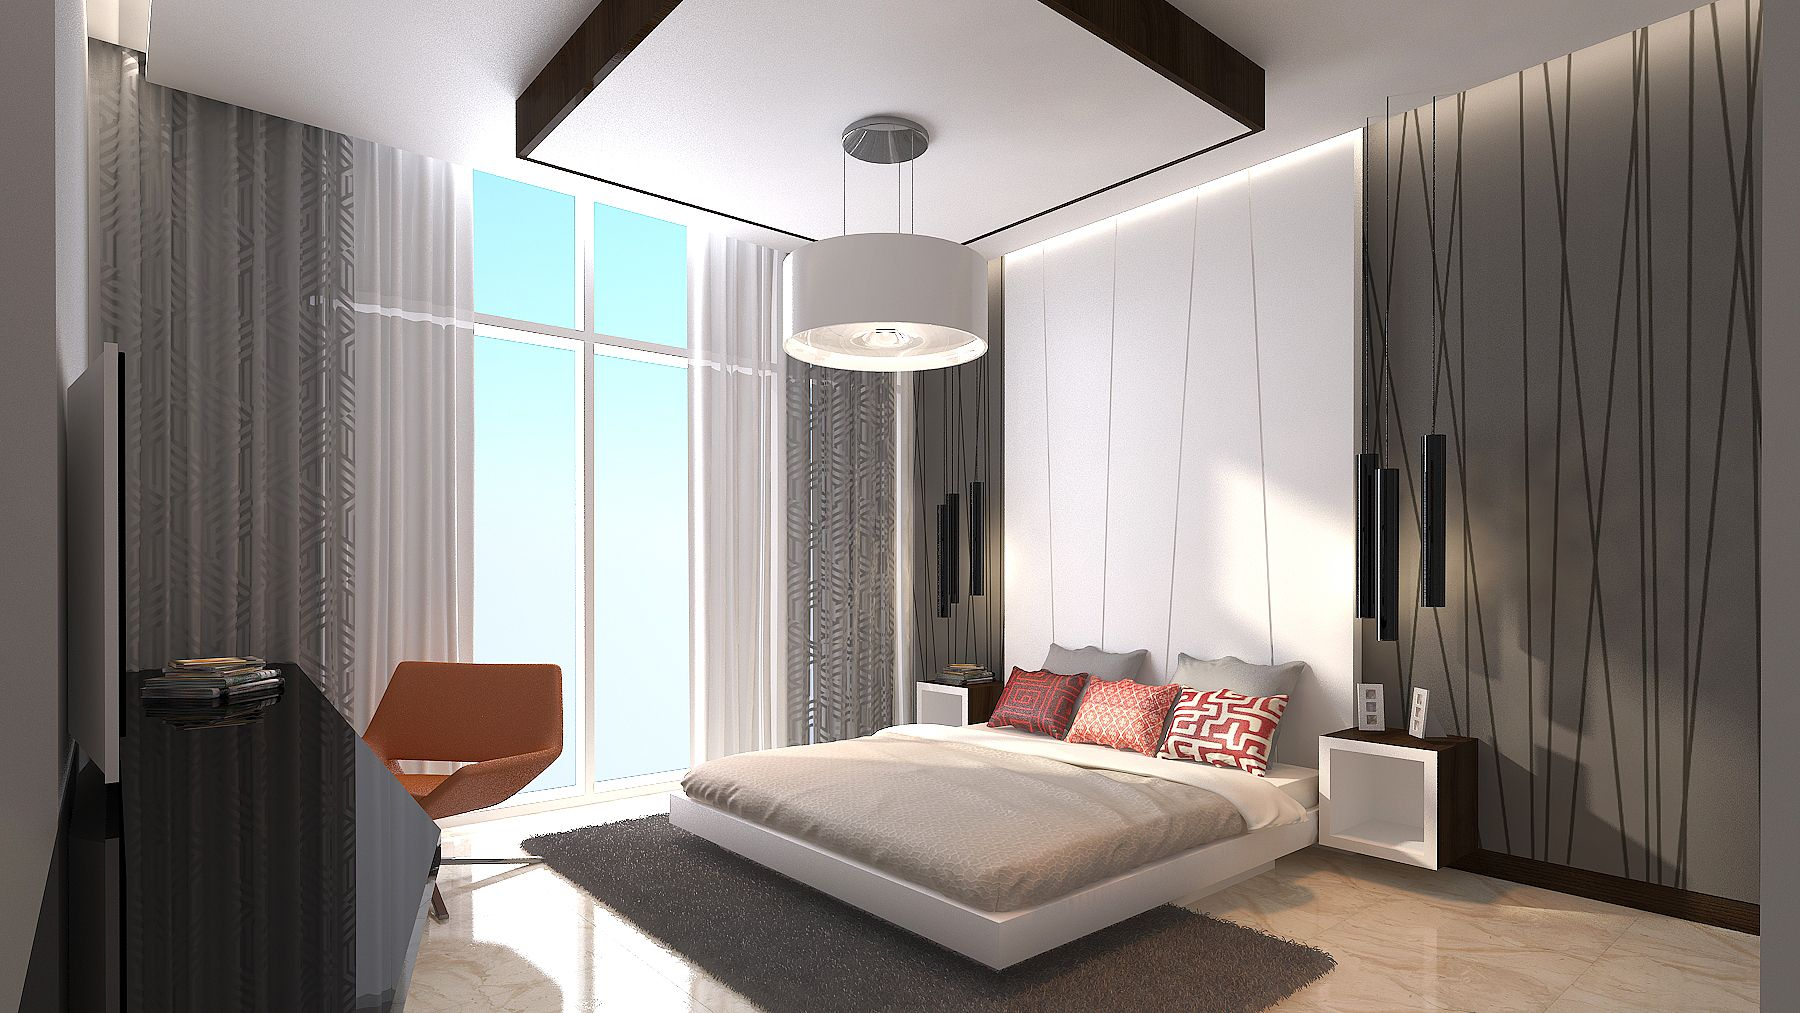 Modern interior design modern bedroom master bedroom geometric interior design 3ds max 3d 3d bedroom design